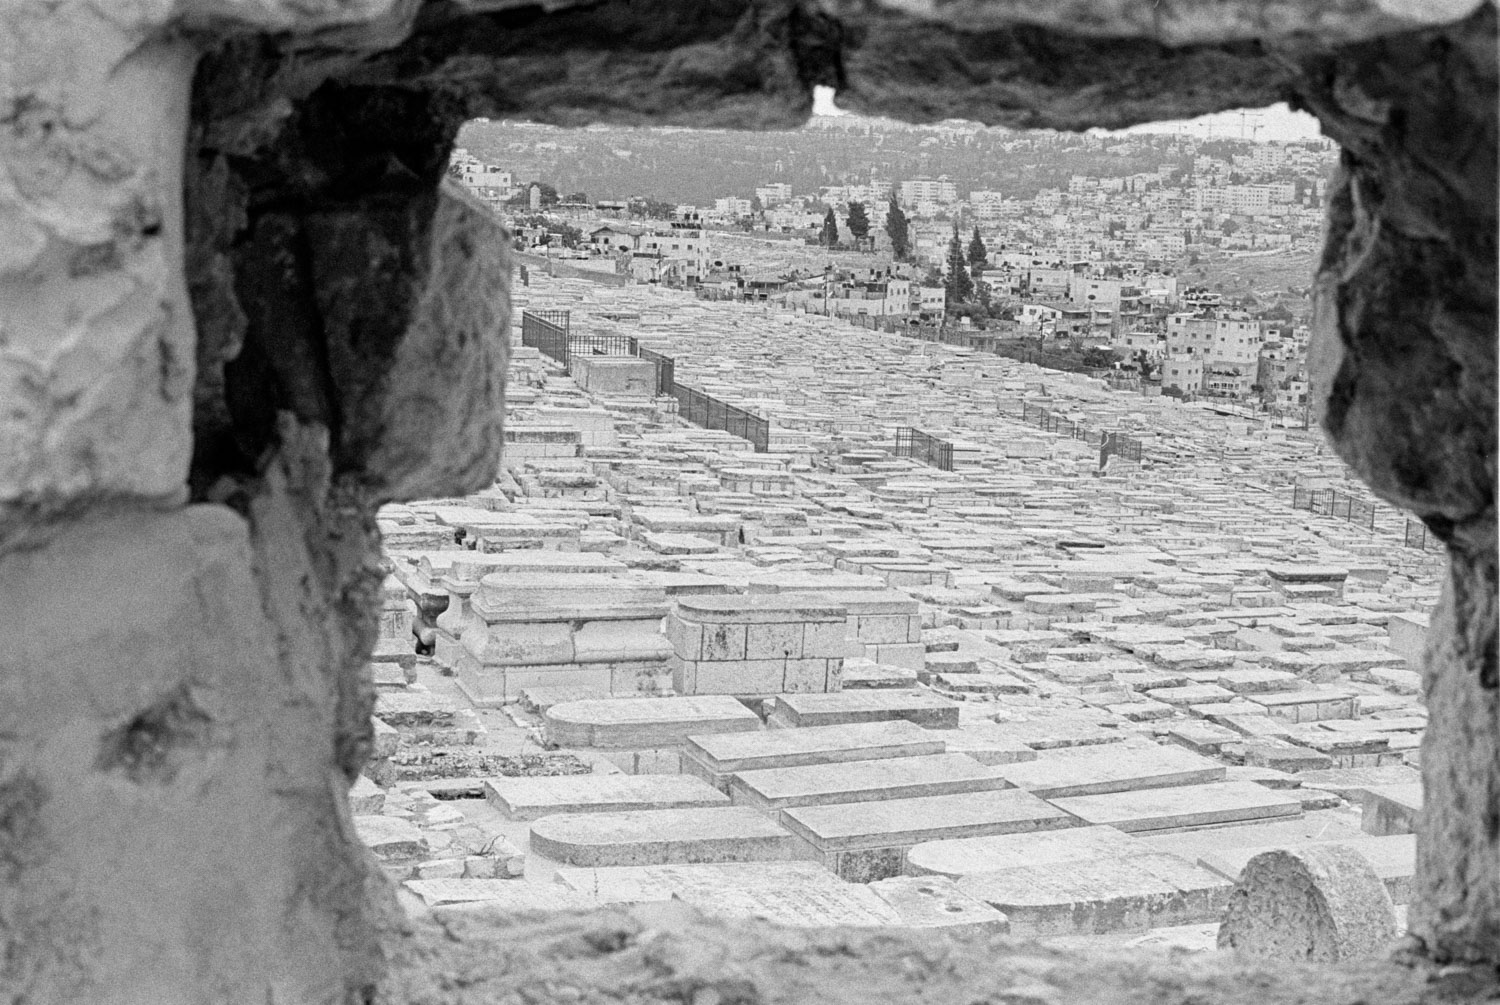 Mount of Olives - Cristian Geelen